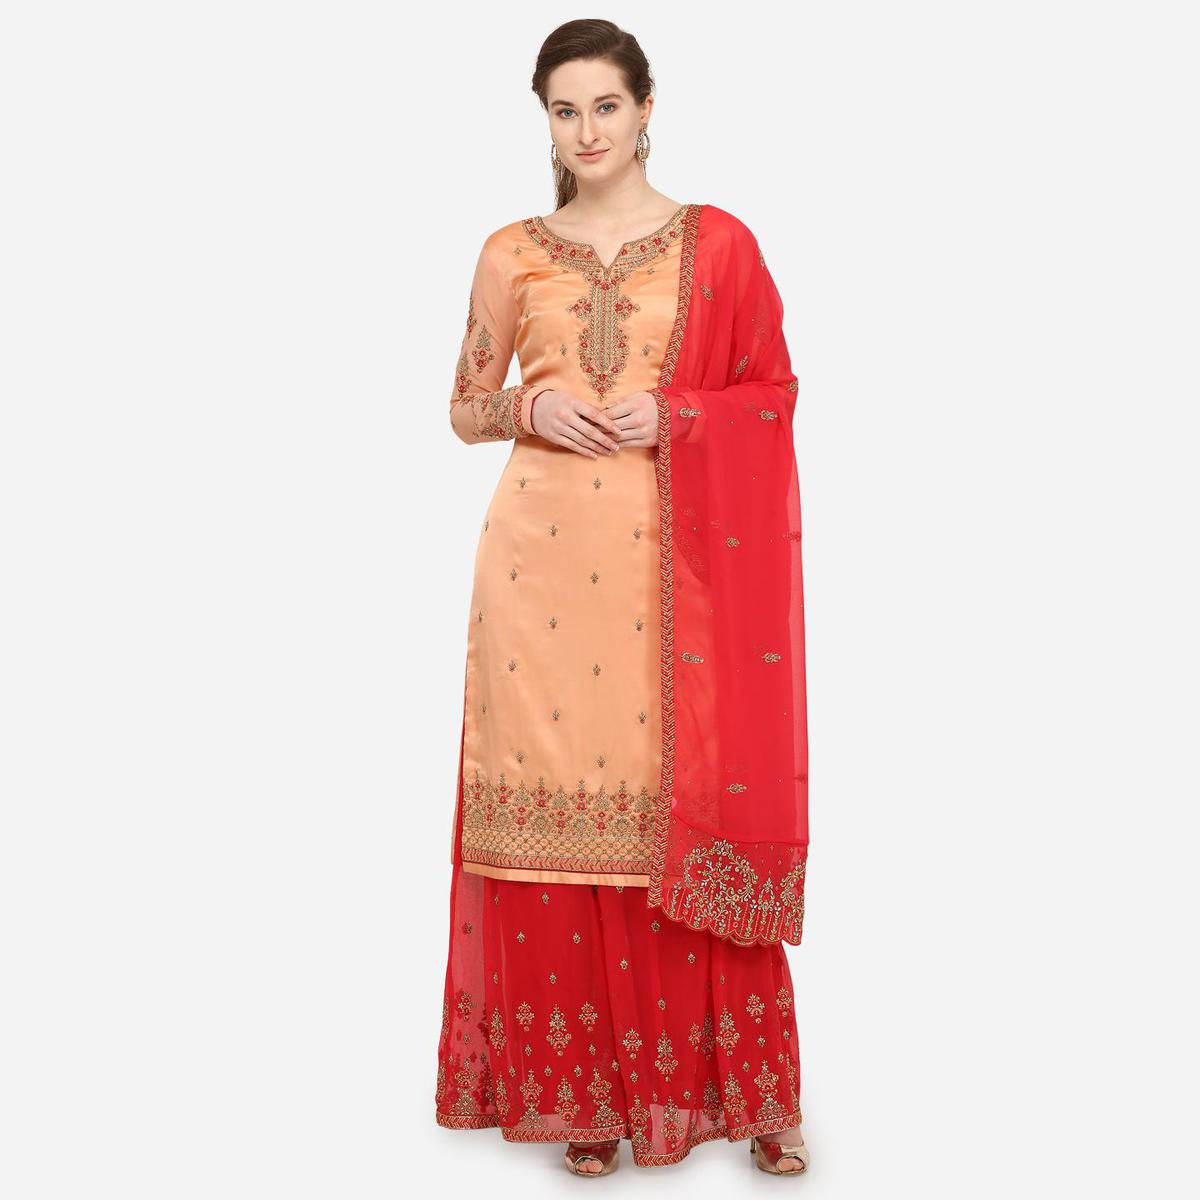 Stylee Lifestyle - Peach Colored Party Wear Embroidered Satin Sharara Suit